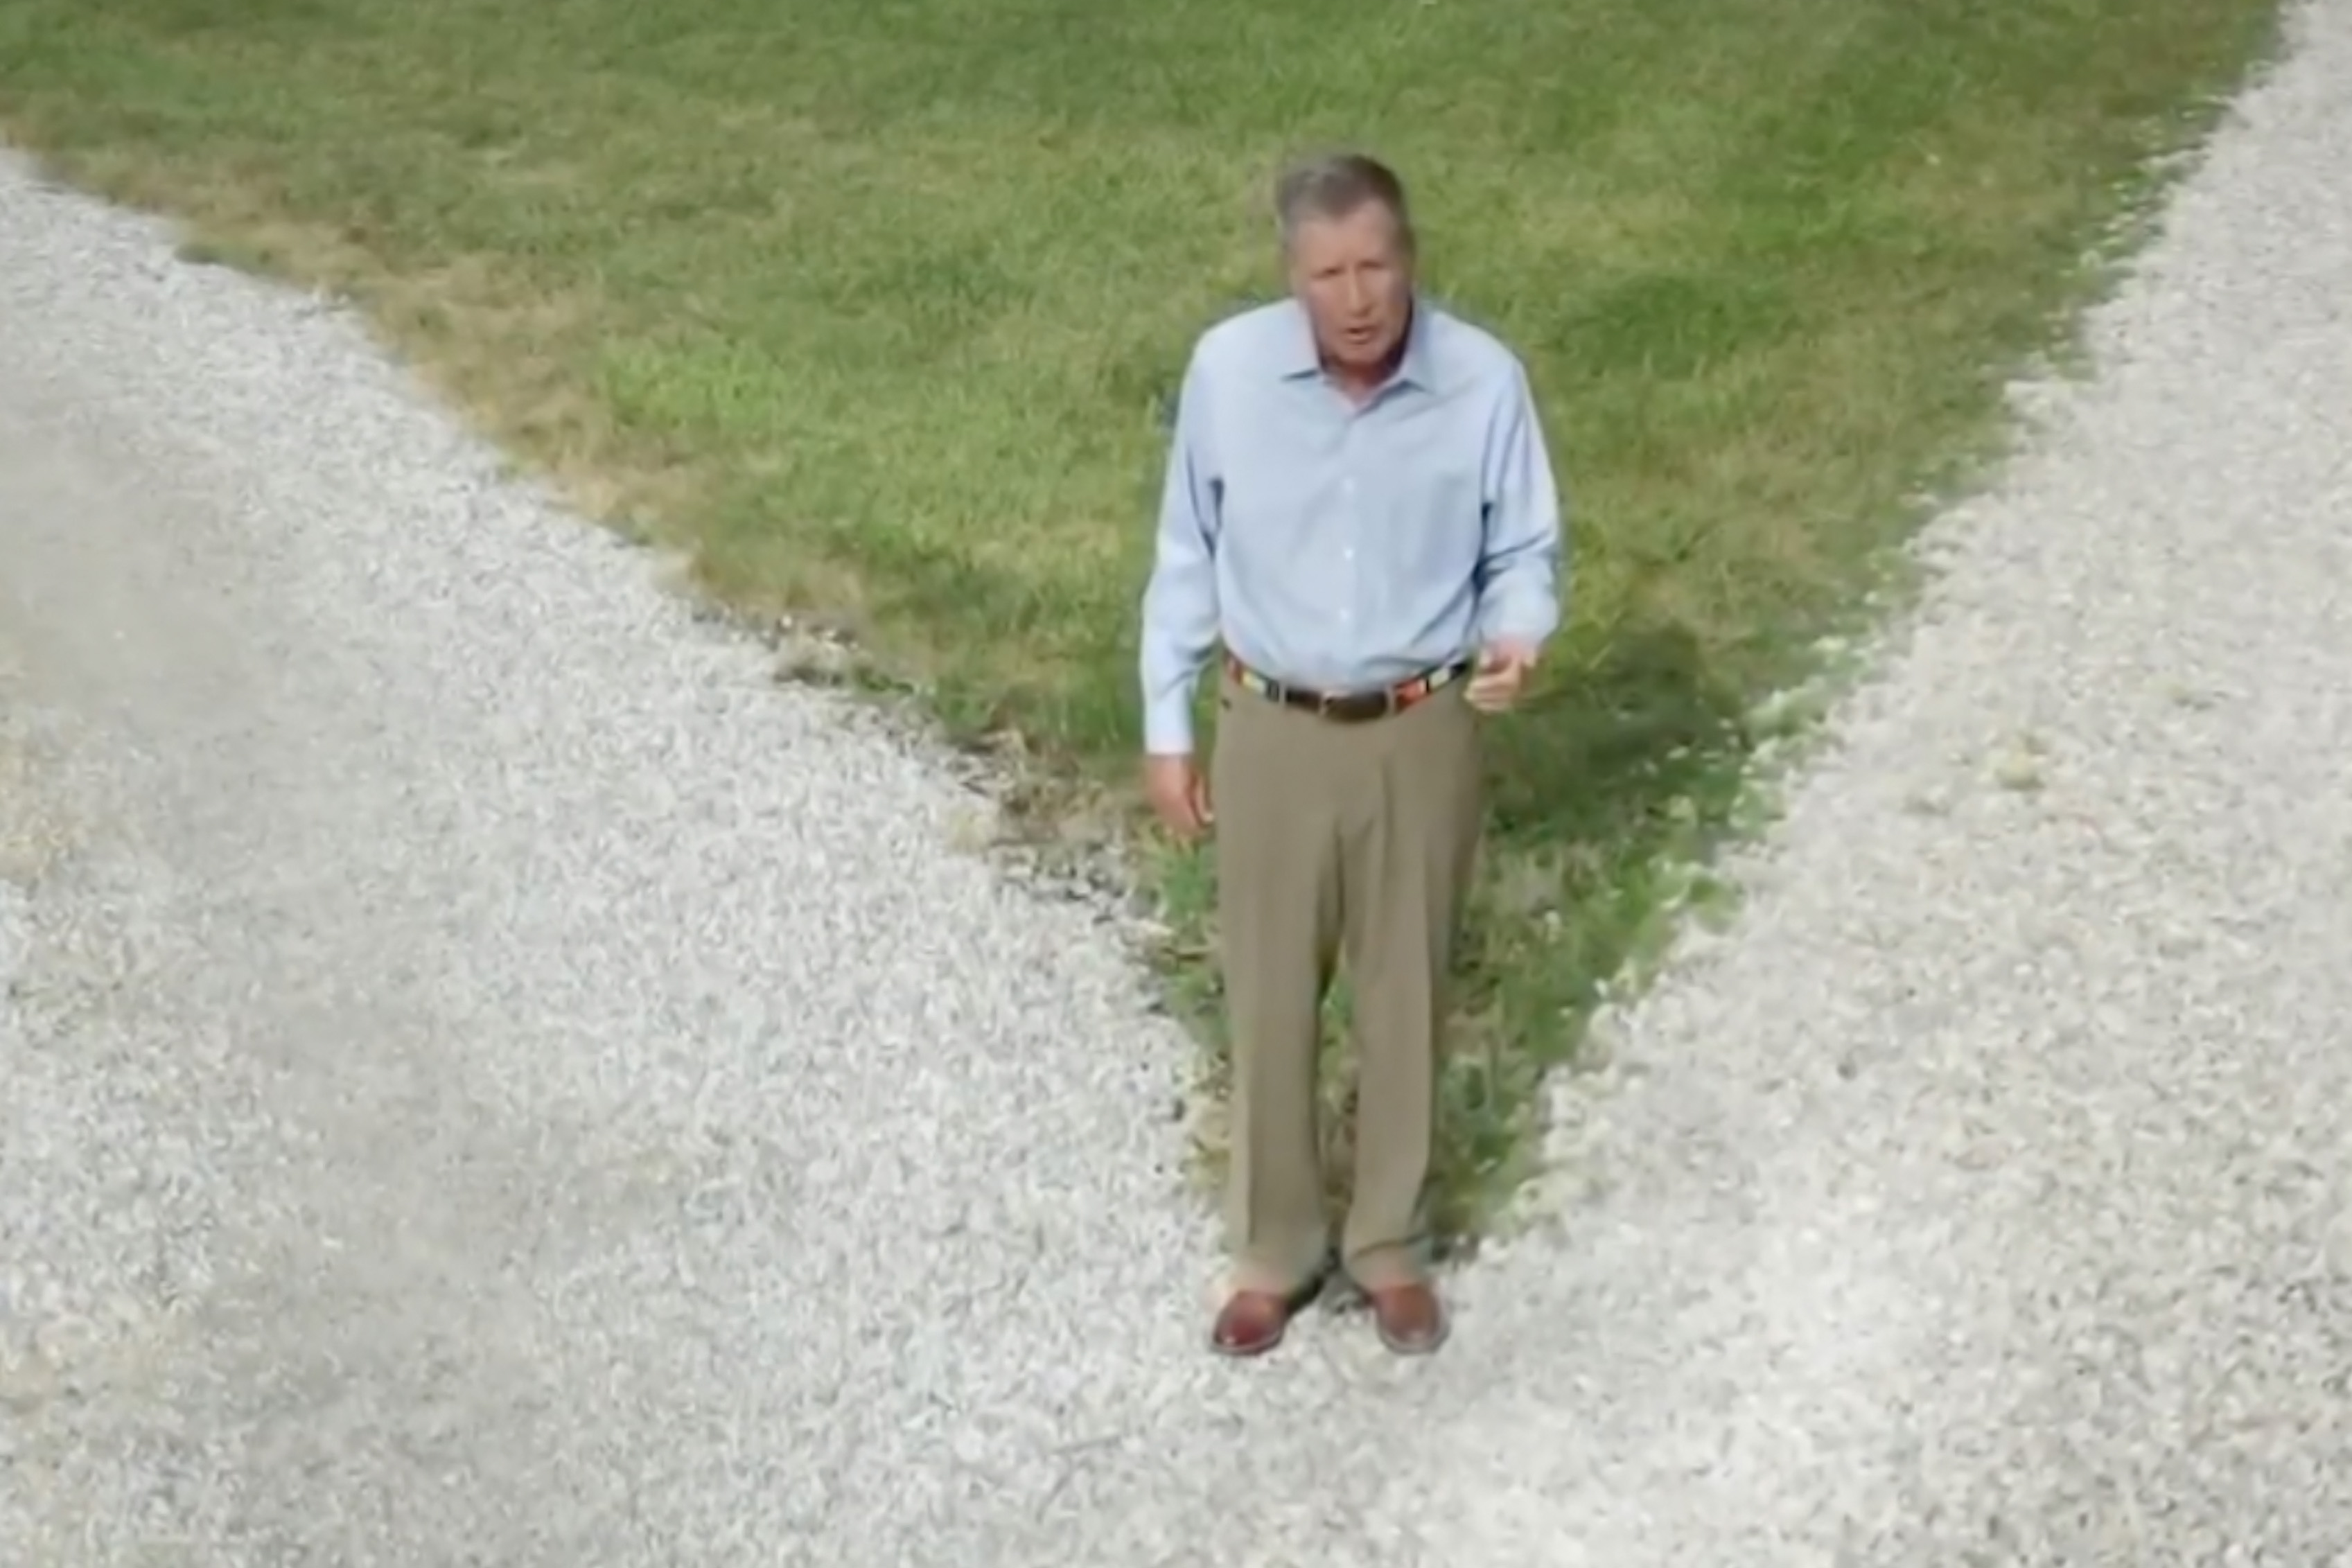 In this screenshot from the DNCC's livestream of the 2020 Democratic National Convention, Republican, Former Ohio Governor John Kasich addresses the audience from a literal crossroads.